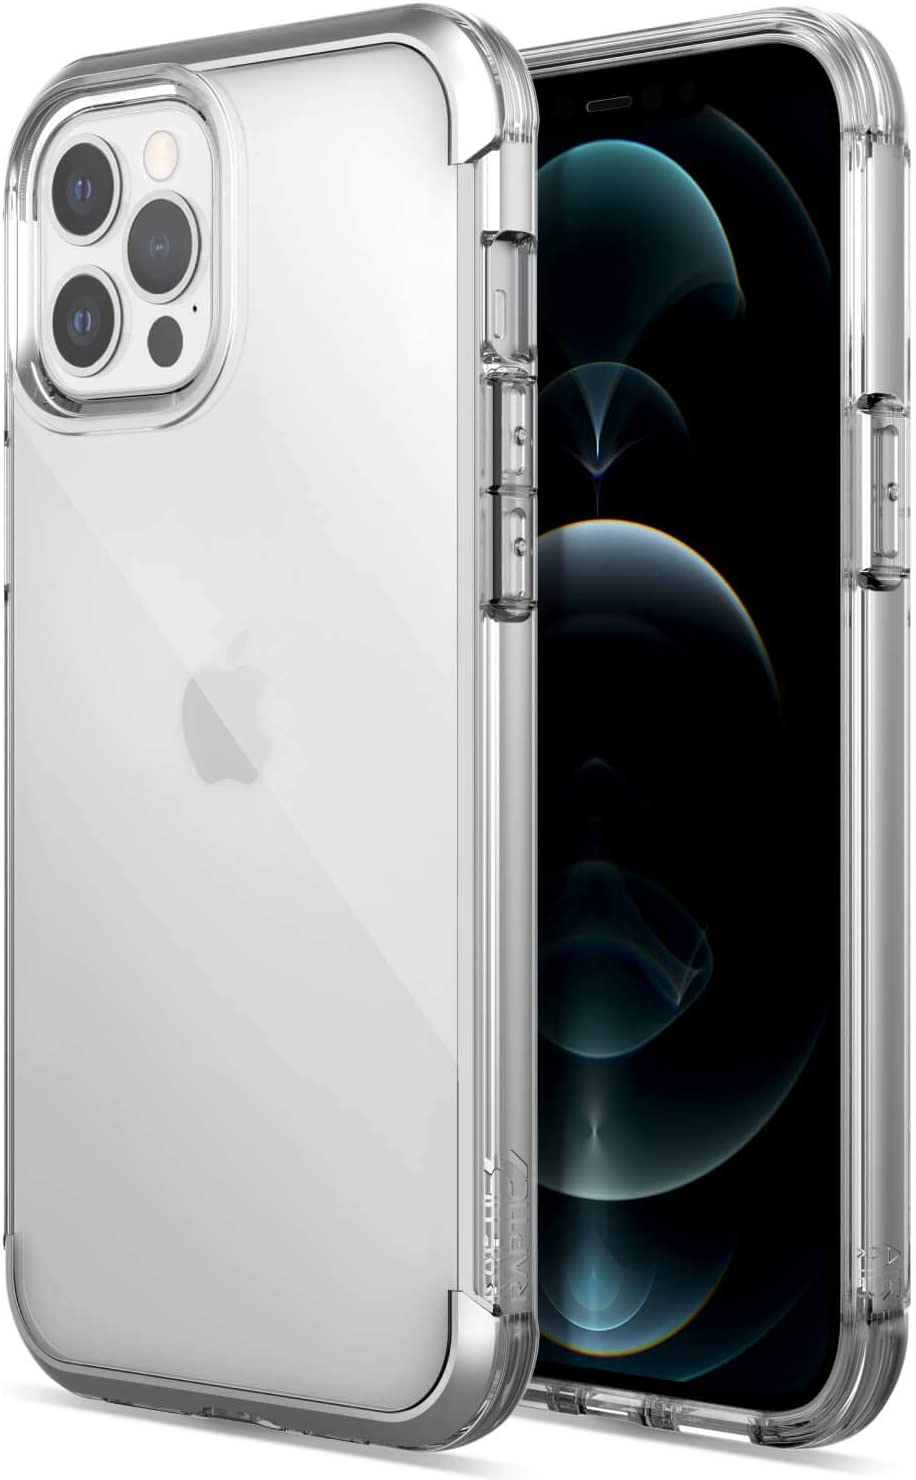 Raptic Air Case Compatible with iPhone 12 Case & iPhone 12 Pro Case, Scratch Resistant, Aluminum Metal Bumper, Wireless Charging, 13ft Drop Protection, Fits iPhone 12 & iPhone 12 Pro, Clear